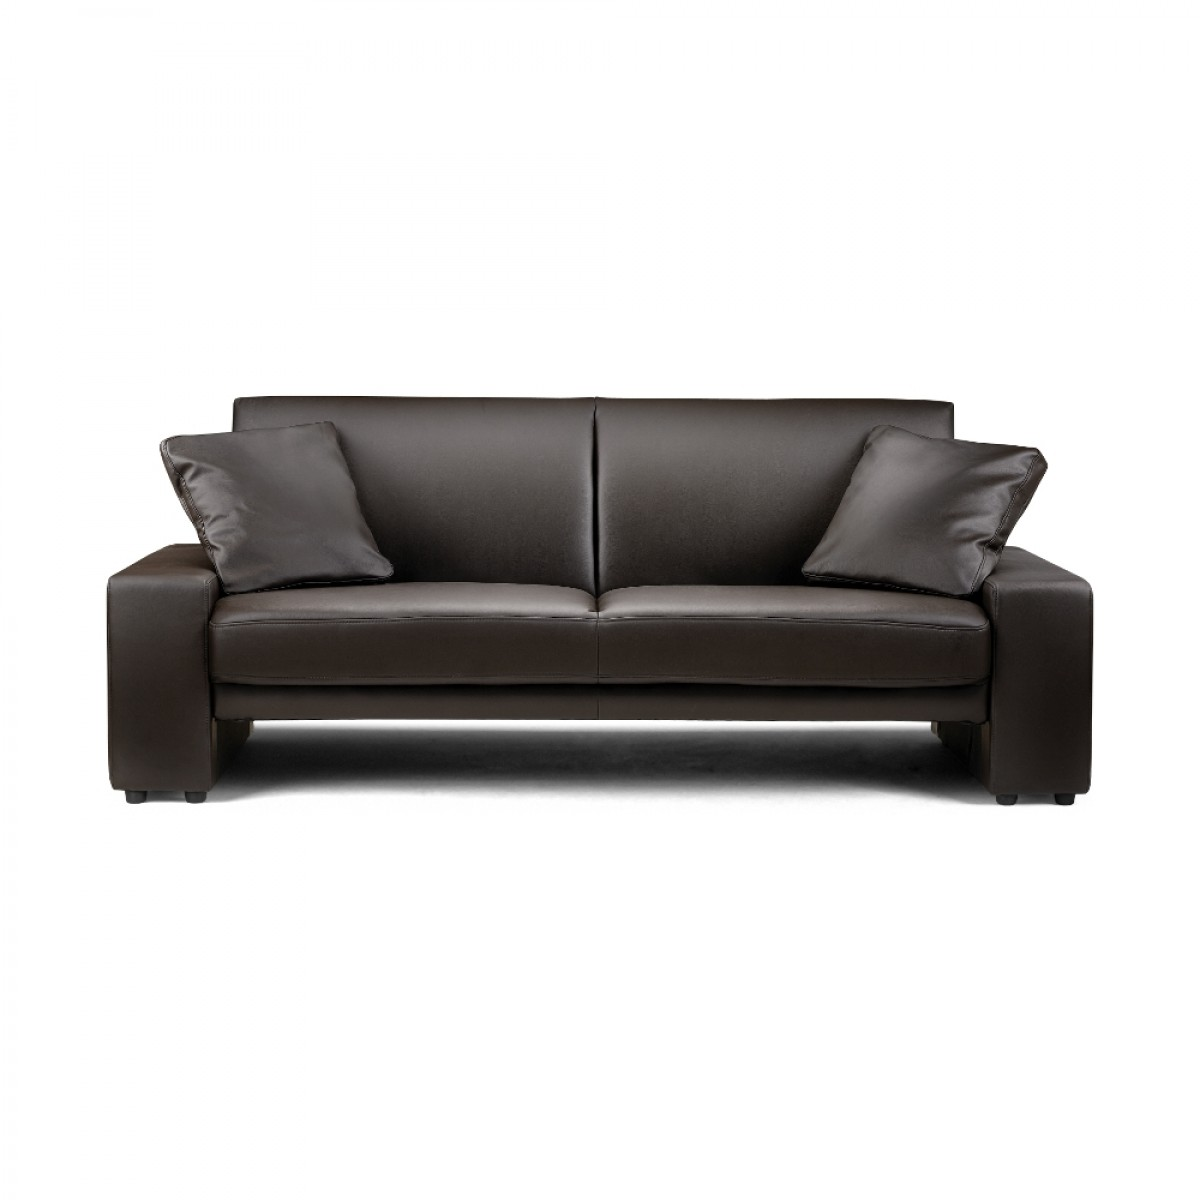 supra brown faux leather sofa bed. Black Bedroom Furniture Sets. Home Design Ideas